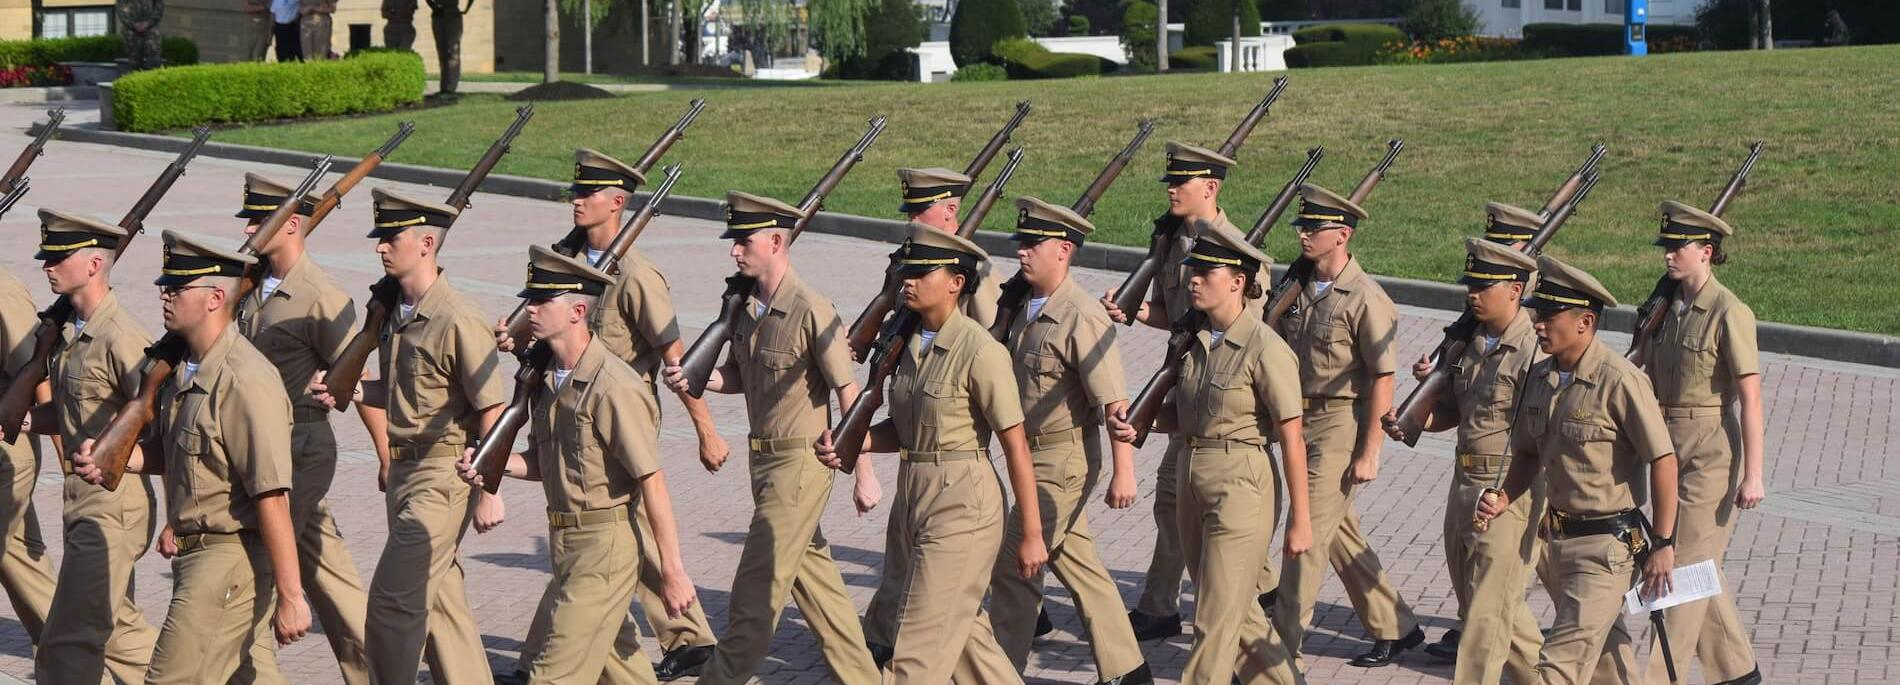 Cadets marching in formation